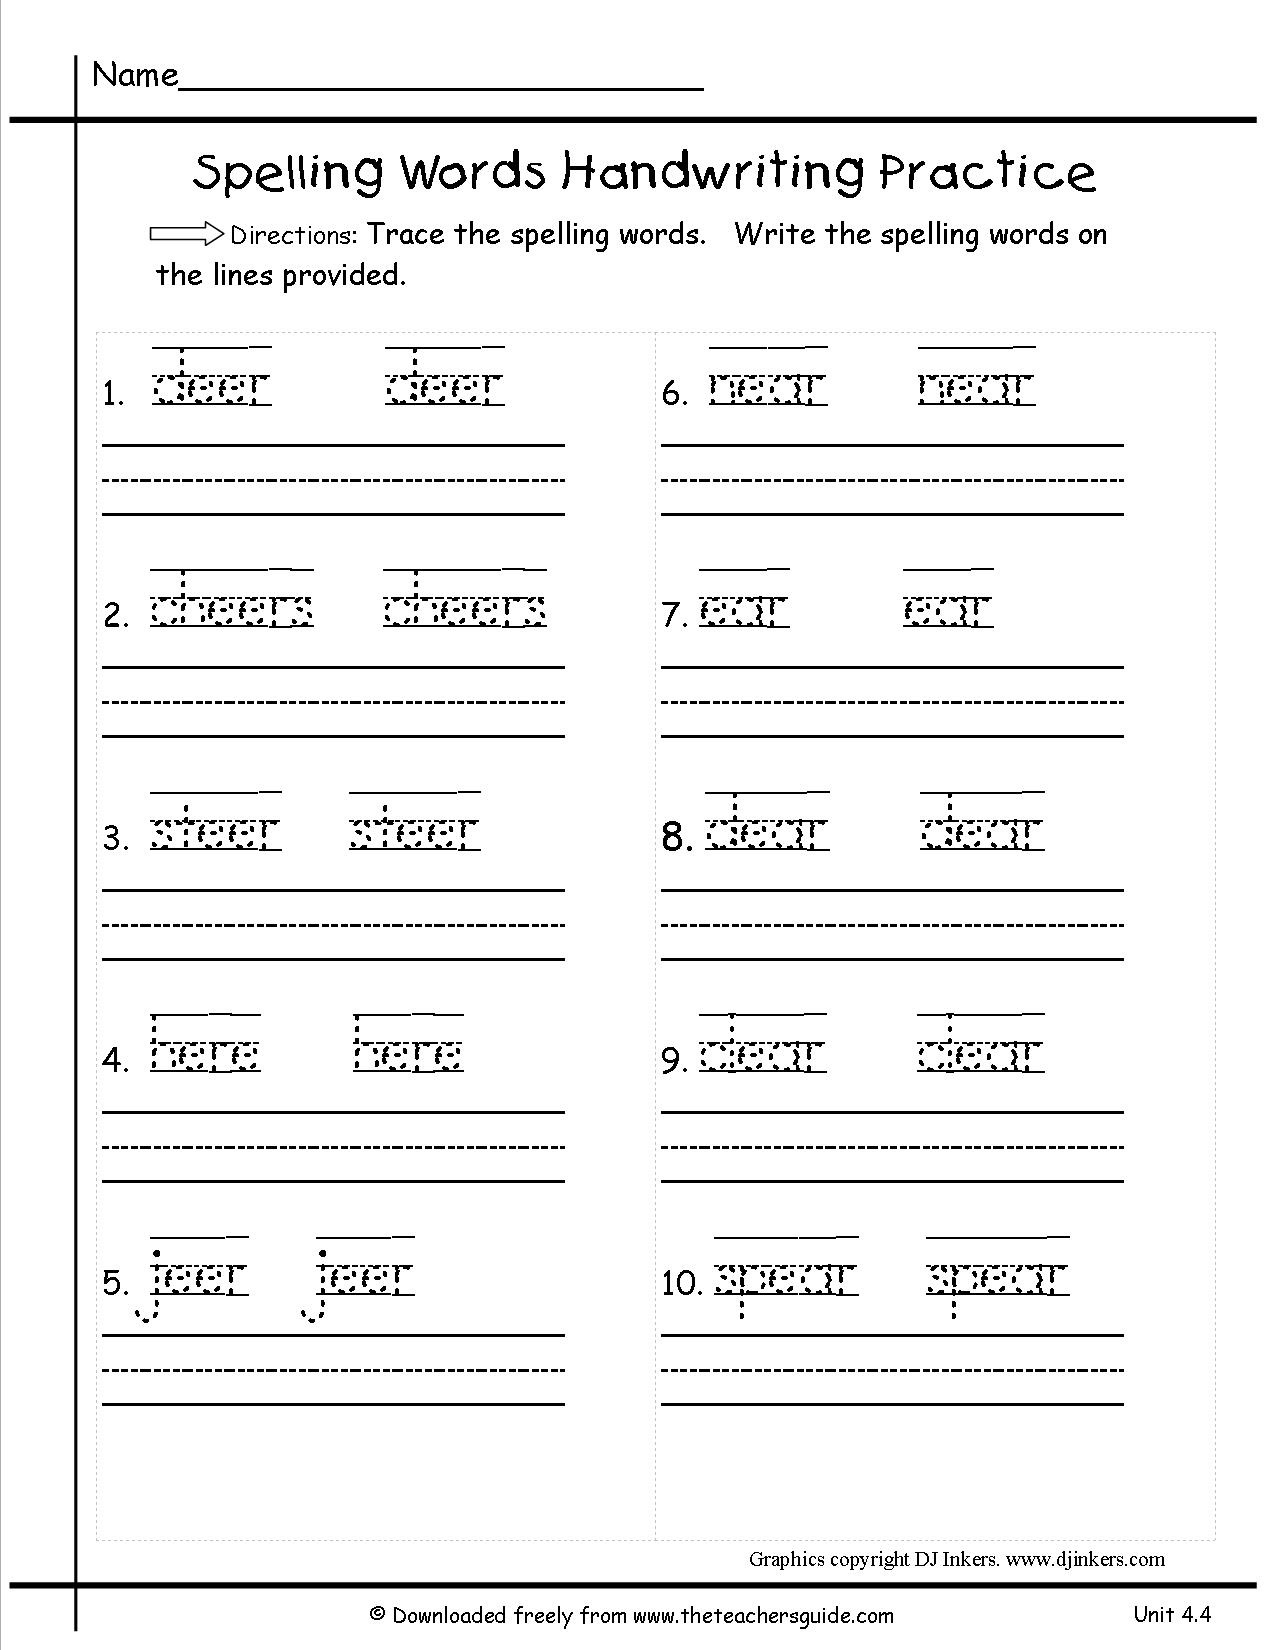 Free Printable Handwriting Sheets For First Grade   Homeshealth - Free Printable Handwriting Worksheets